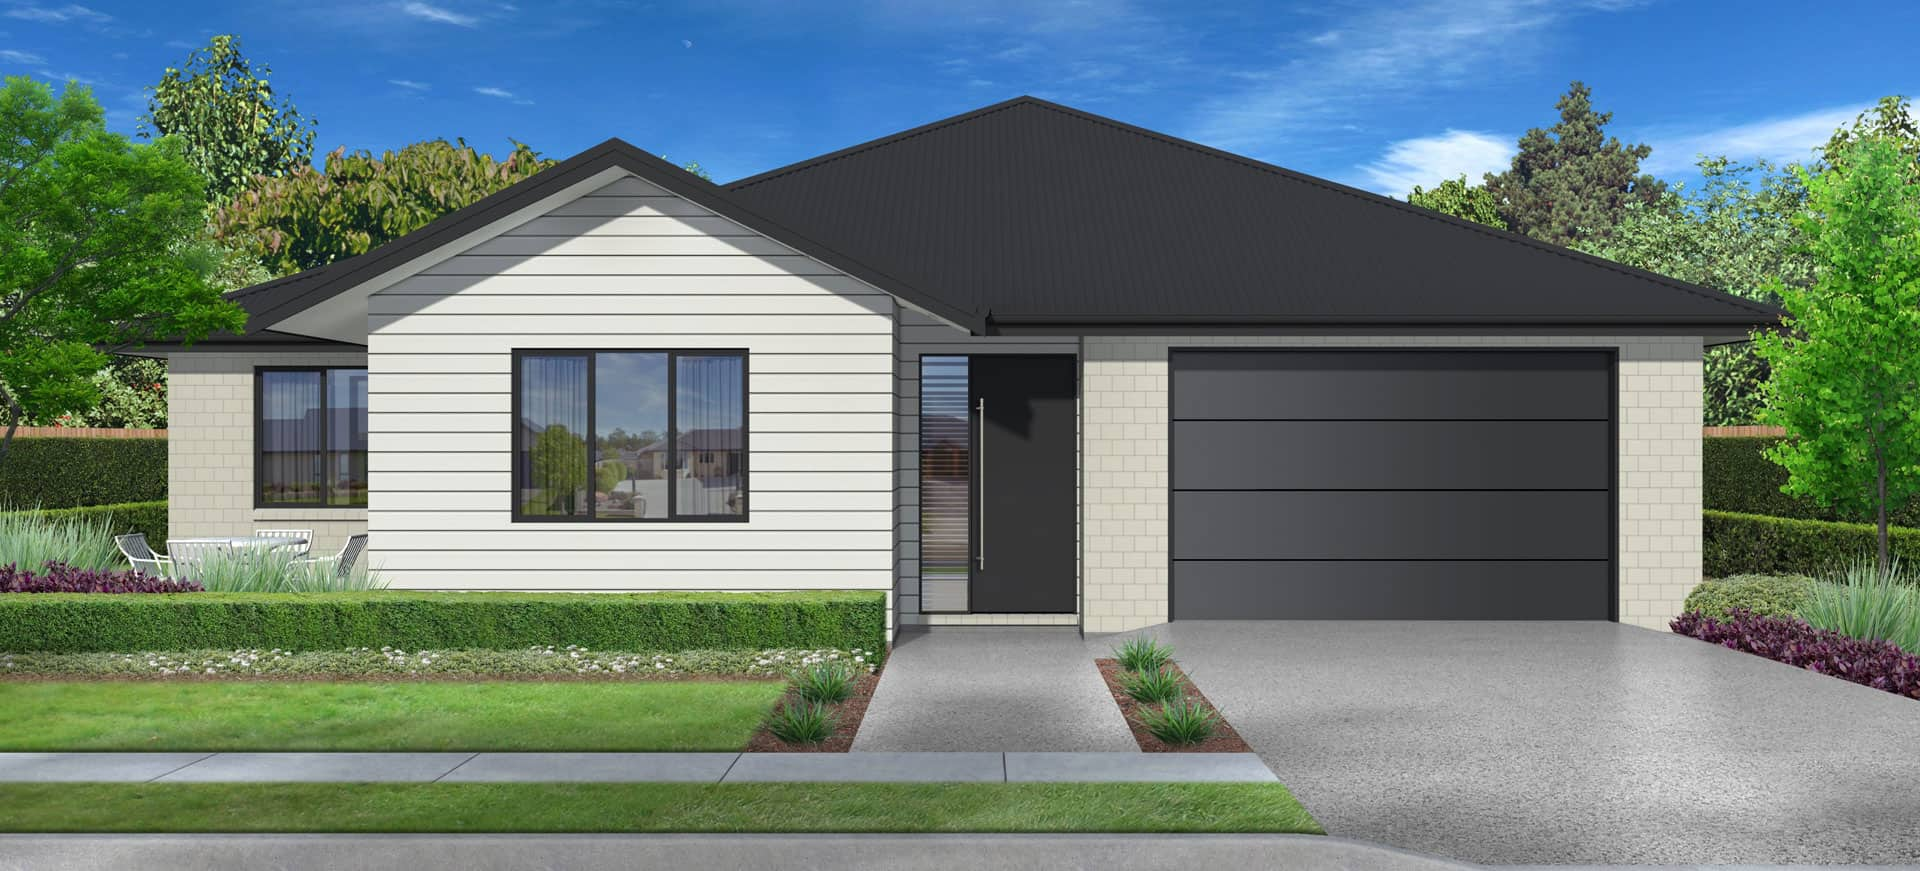 Haultain-State-Subdvision-Te-Awamutu-New-Zealand-First-Buyers-House-And-Land-Packages-Rangitoto